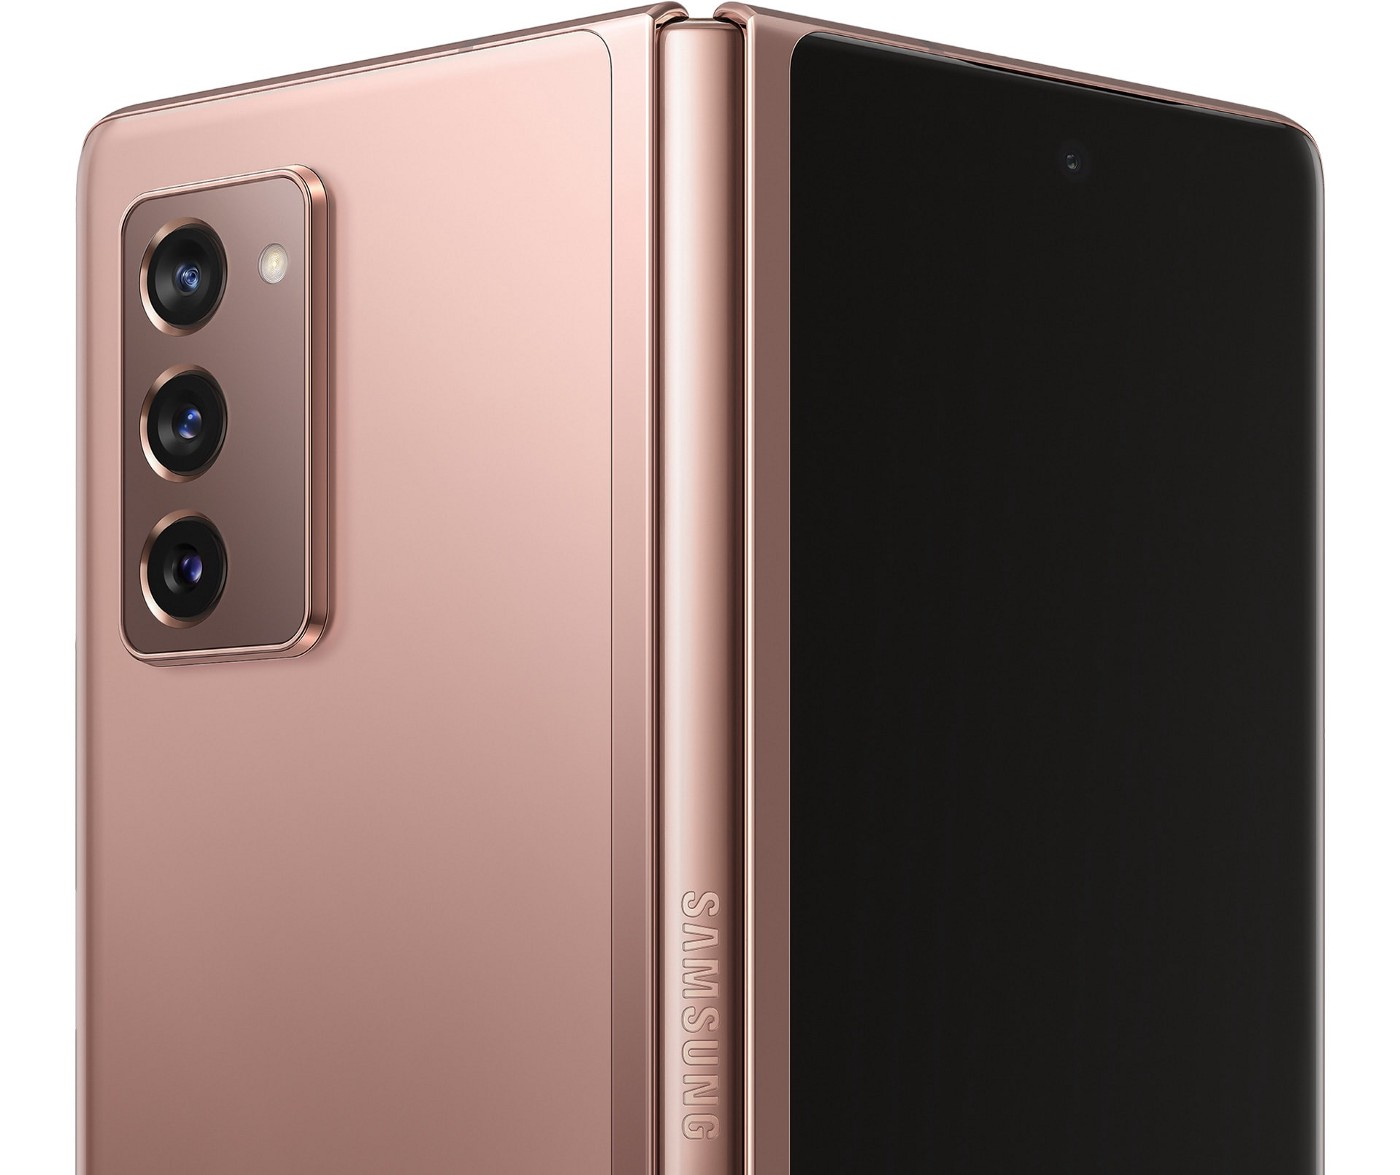 Picture showing the Hinge of the new Galaxy z Fold 2